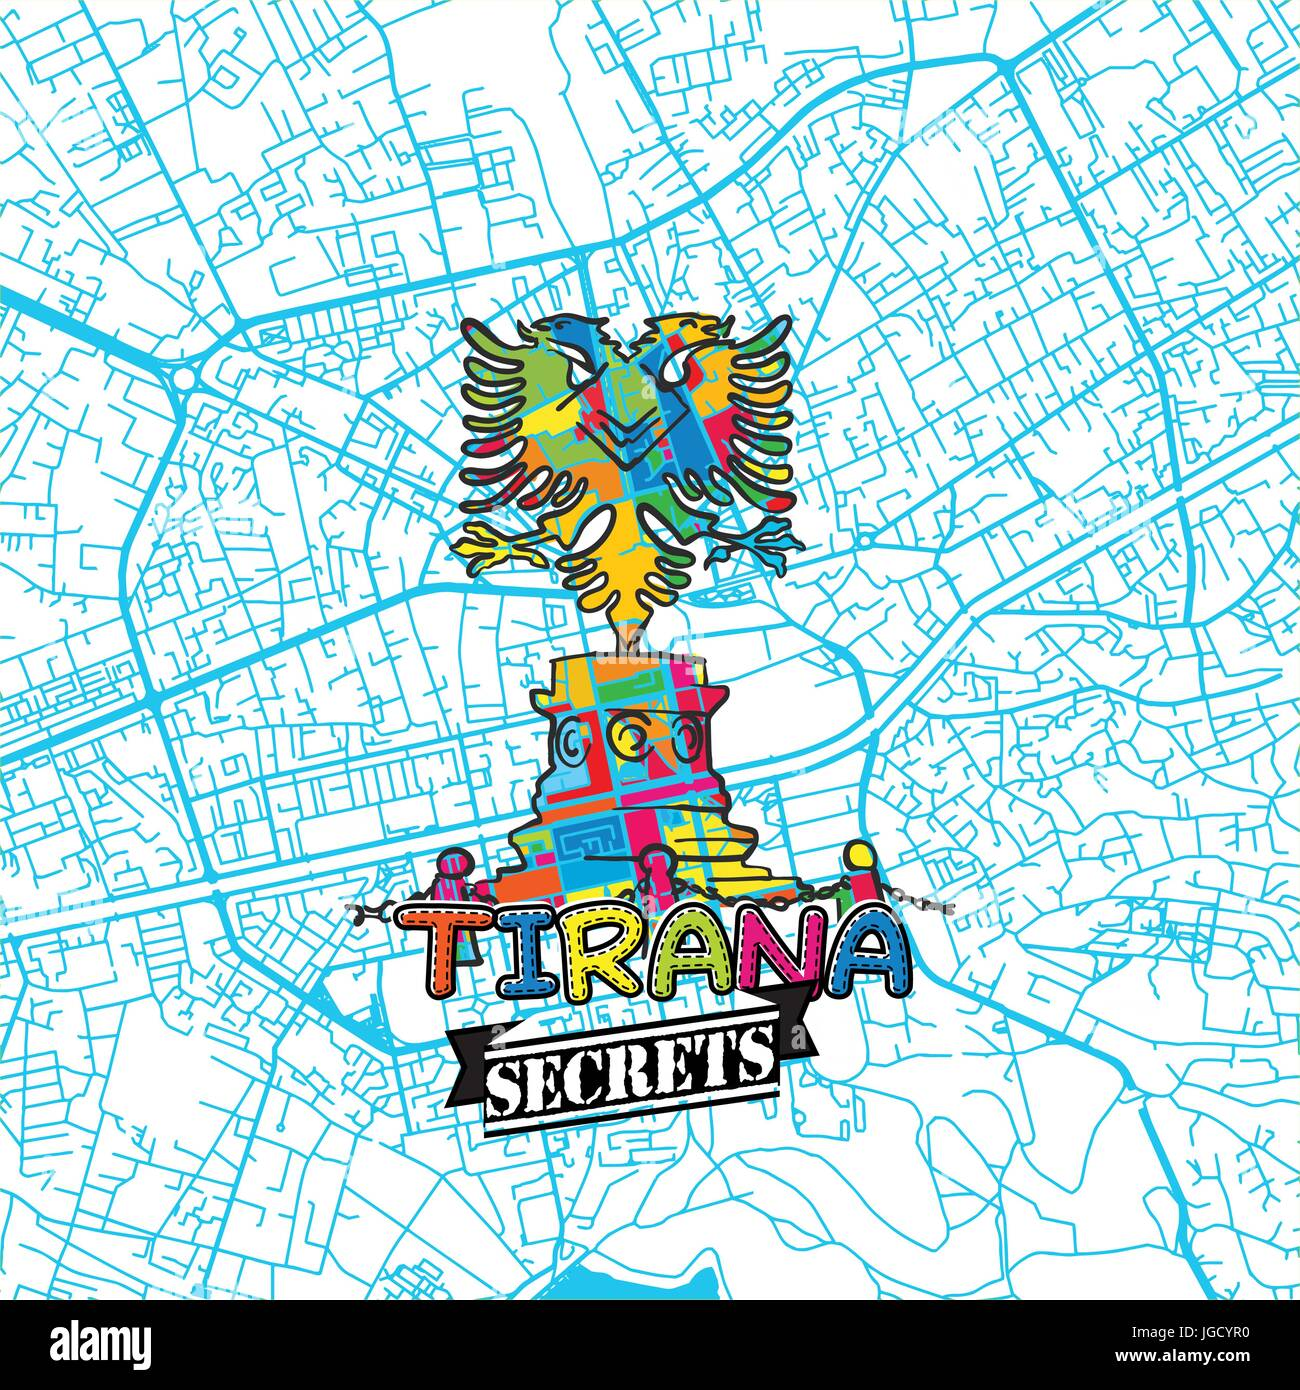 Tirana Travel Secrets Art Map for mapping experts and travel guides. Handmade city logo, typo badge and hand drawn - Stock Vector